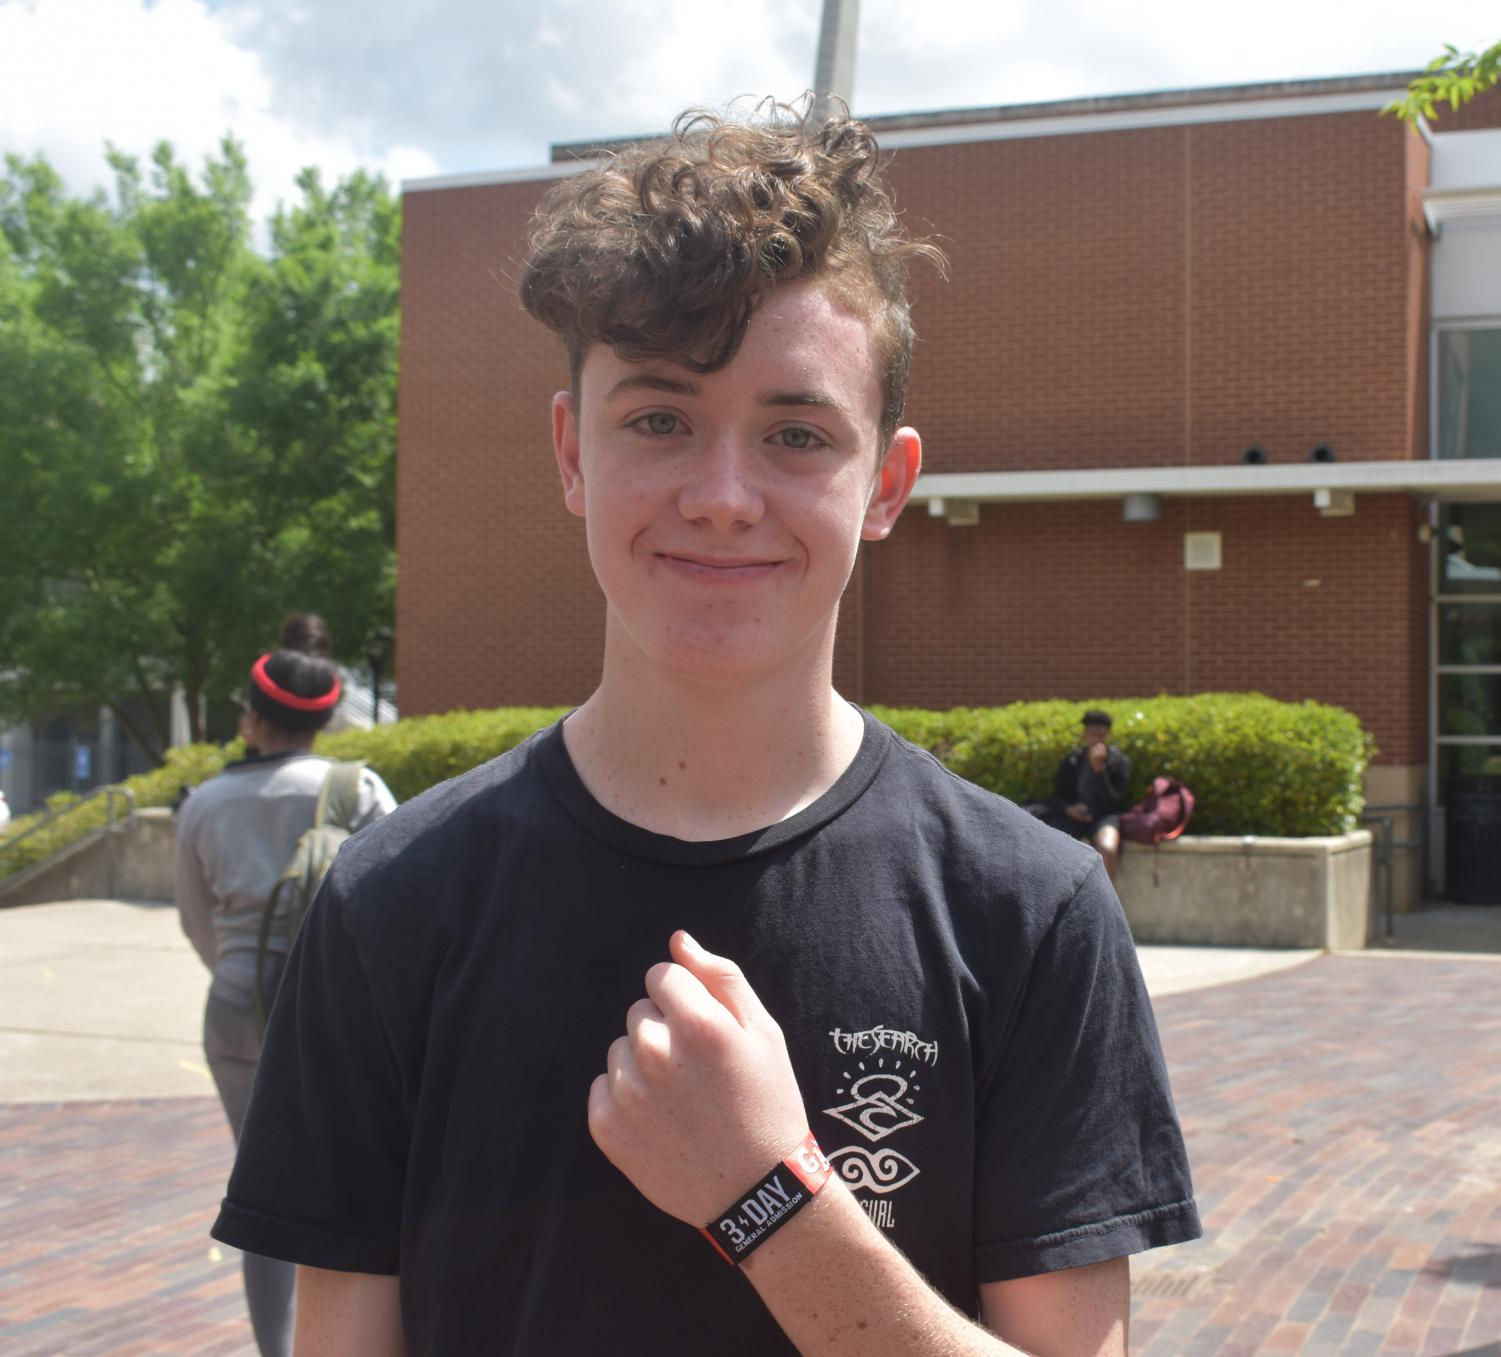 Sophomore Brody Dowling shows off his Shaky Knees music festival wristband. Shaky Knees is May 3-5 at Central Park in Atlanta.